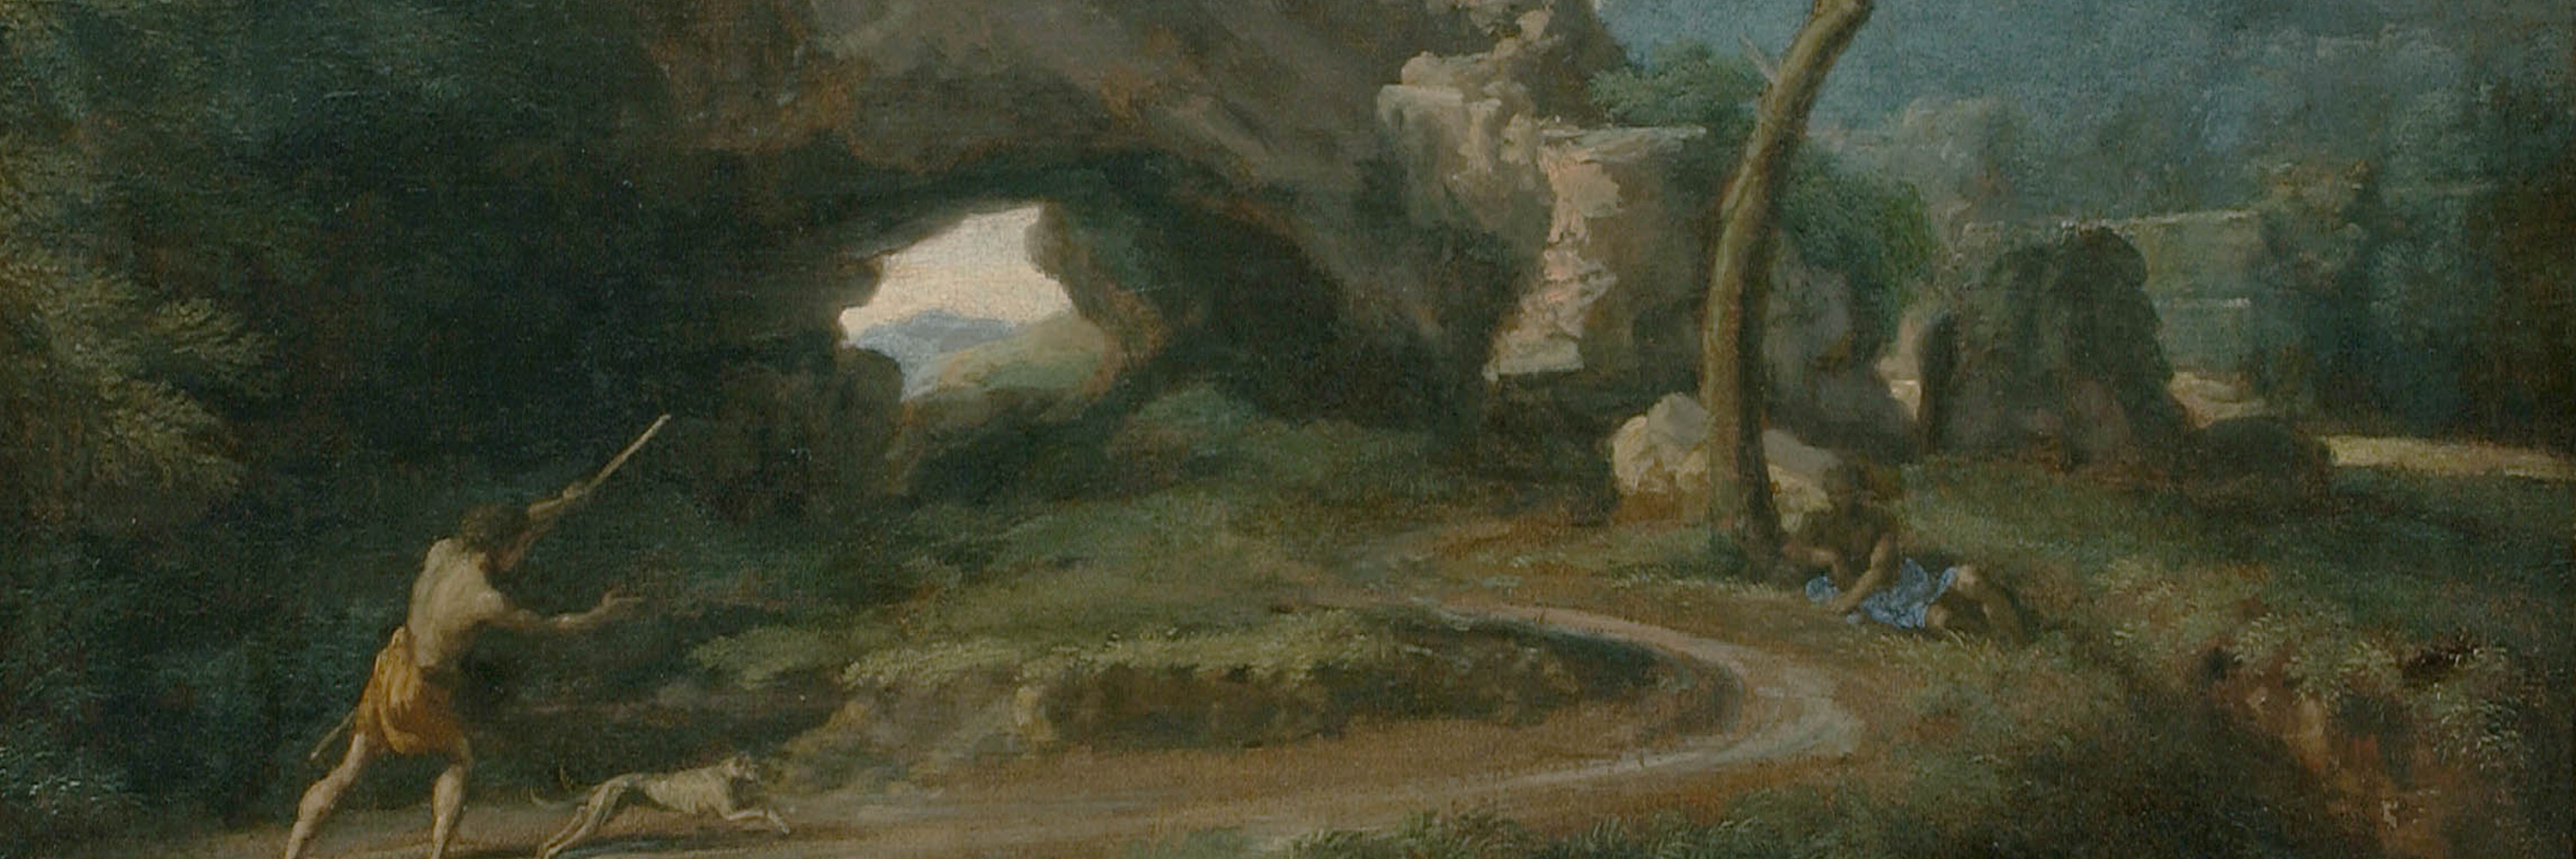 Landscape painting depicting a natural rock formation with shepherd and dog in foreground. Another man is shading himself under a tree nearby.